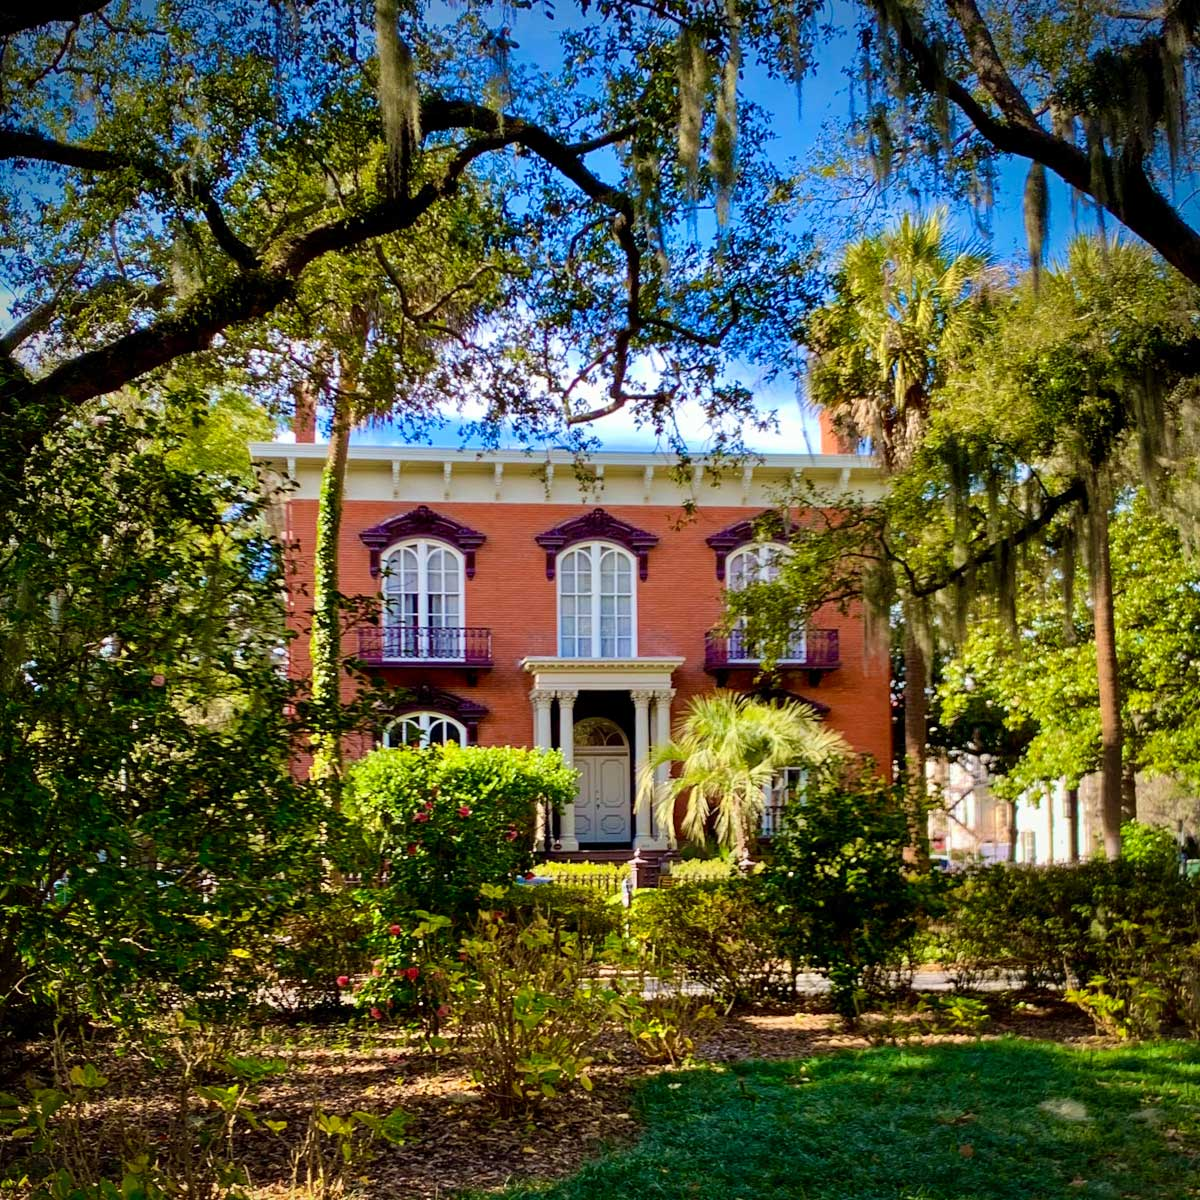 The Mercer House from Midnight In The Garden Of Good And Evil, one of the many awesome things to do in Savannah, Georgia